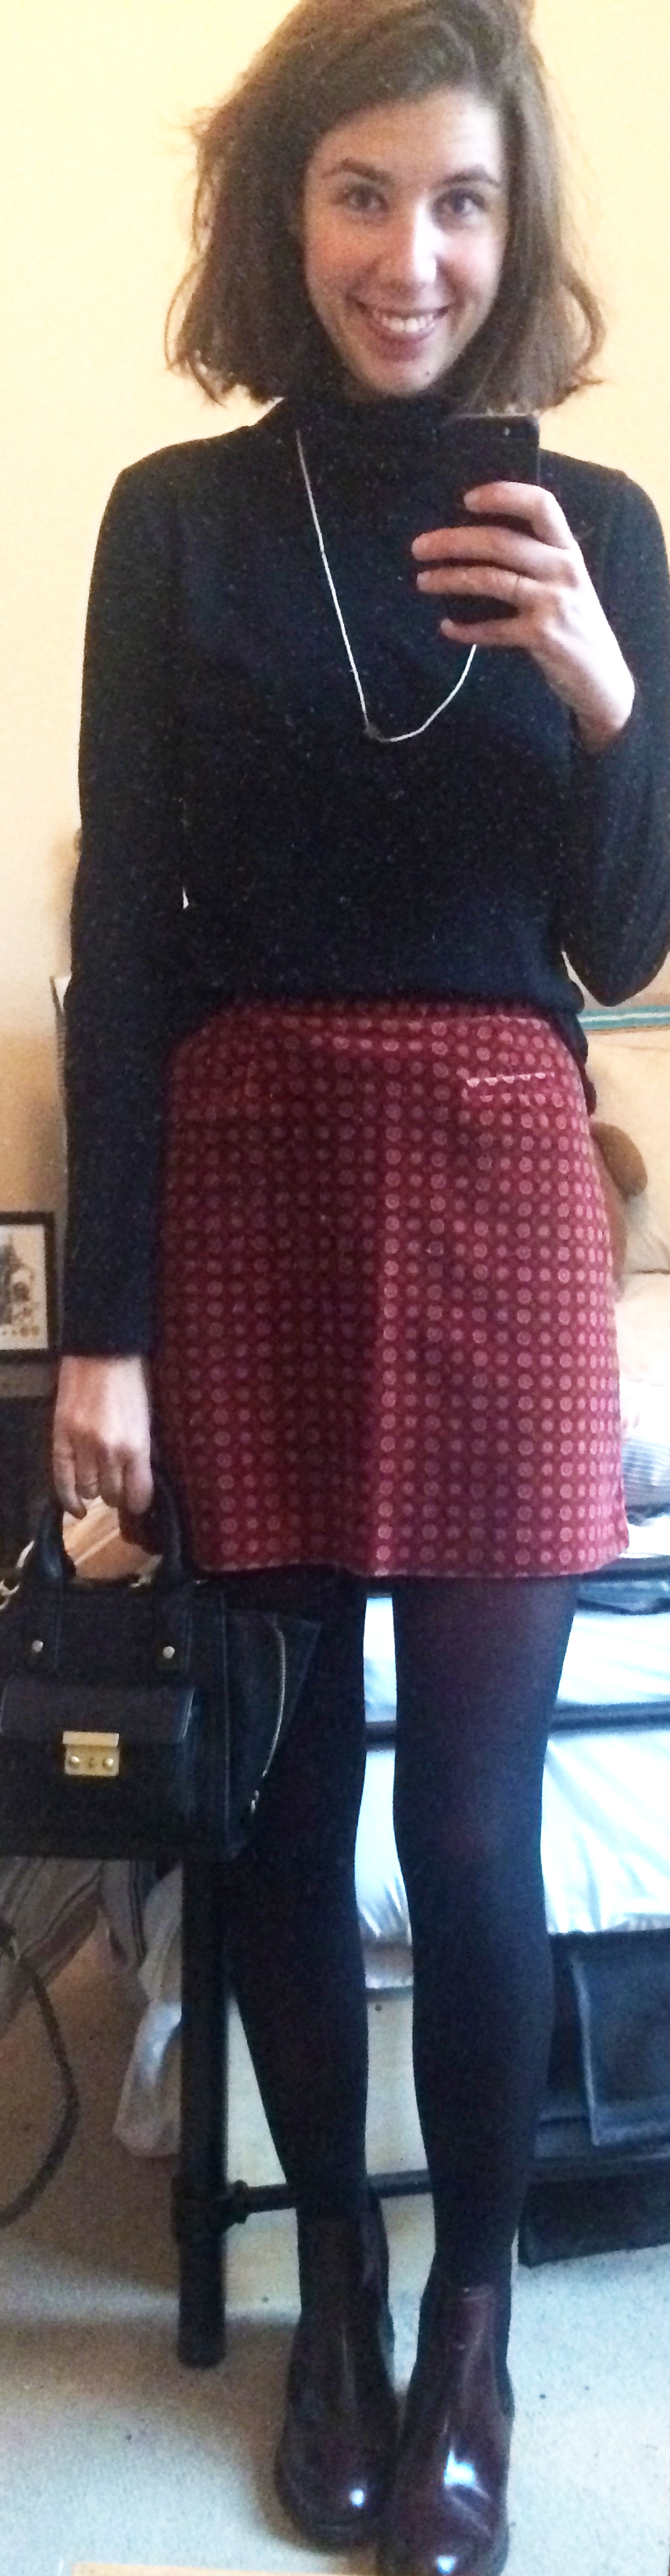 Burgundy Chelsea Boots ,  Black Tights , Phillip Lim for Target Bag, $2 Turtleneck, Thrifted Skirt, Thrifted Necklace